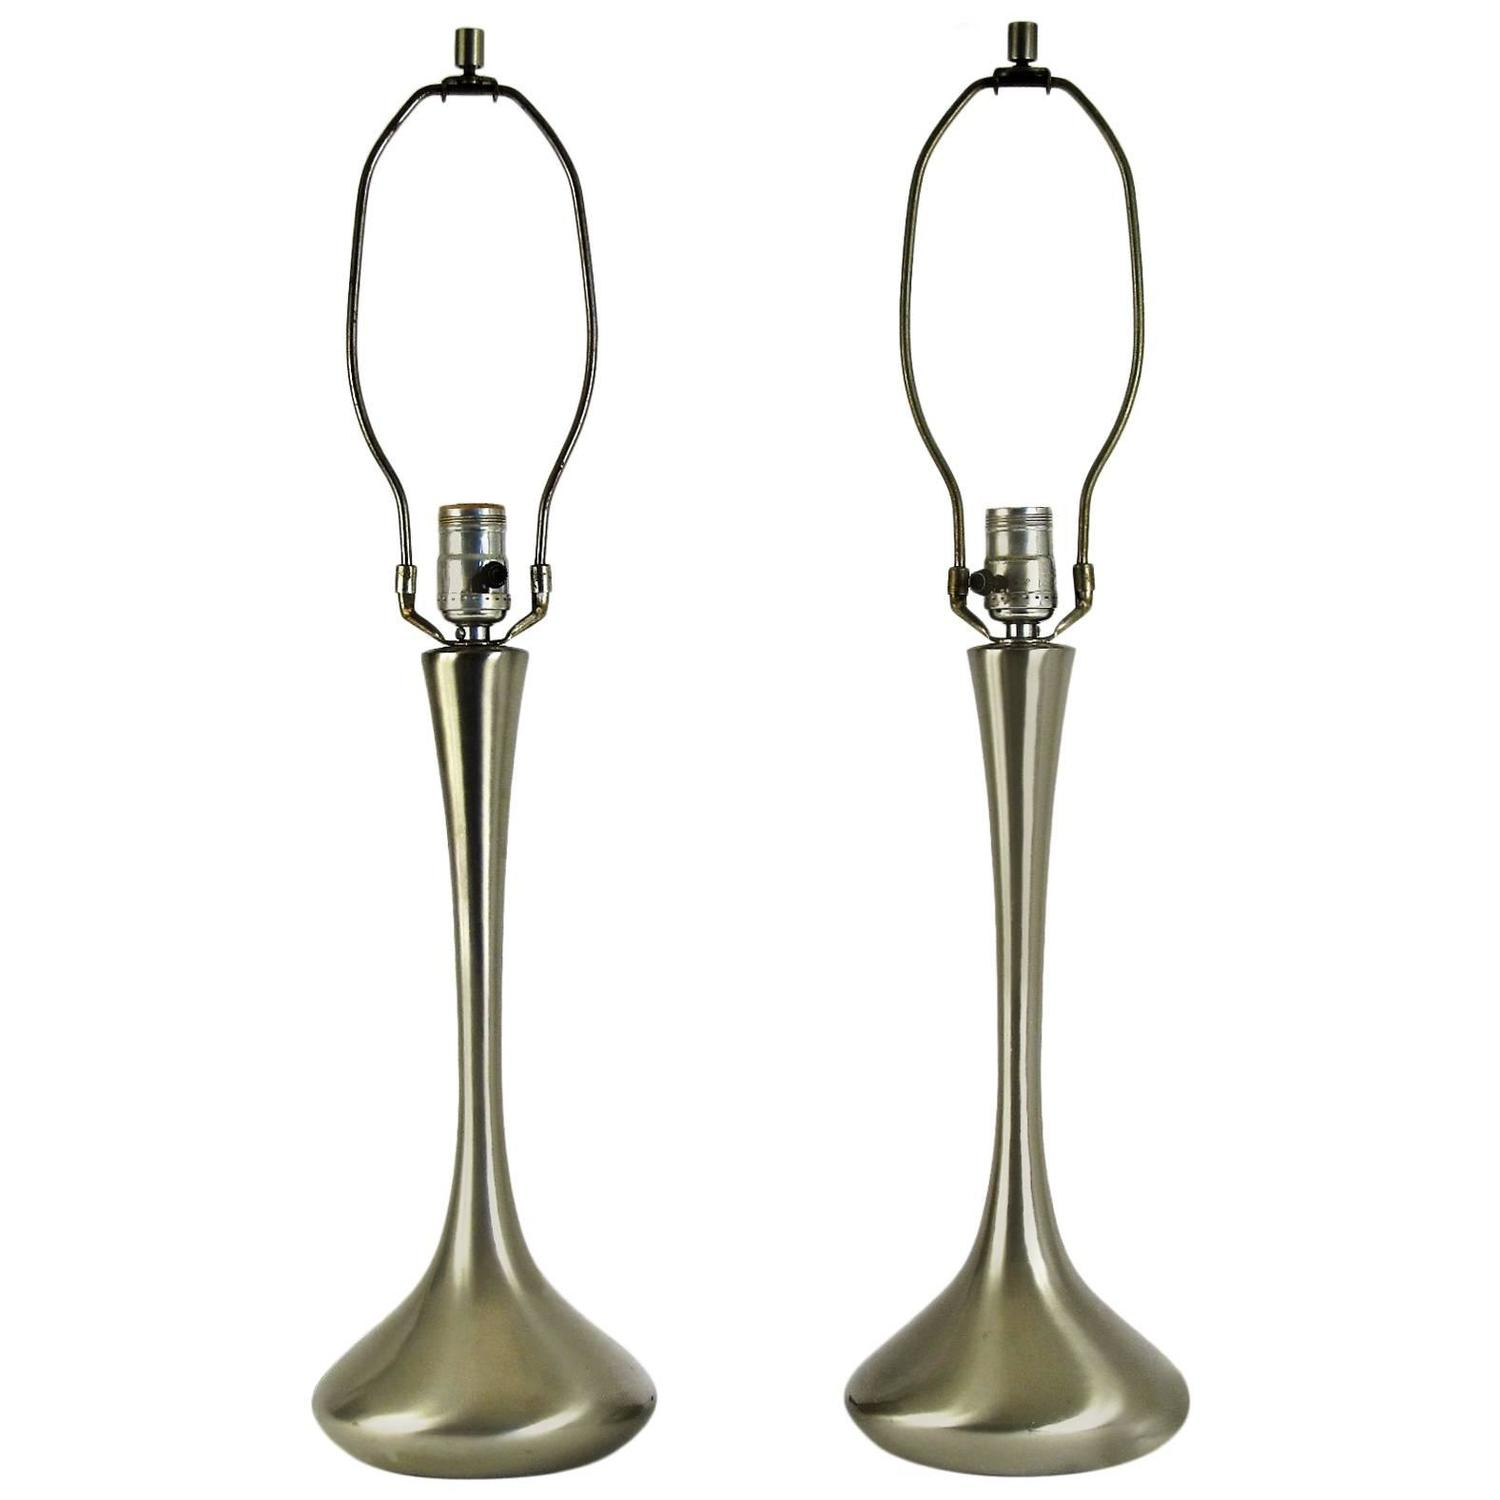 pair of laurel brushed nickel moderne table lamps at 1stdibs. Black Bedroom Furniture Sets. Home Design Ideas